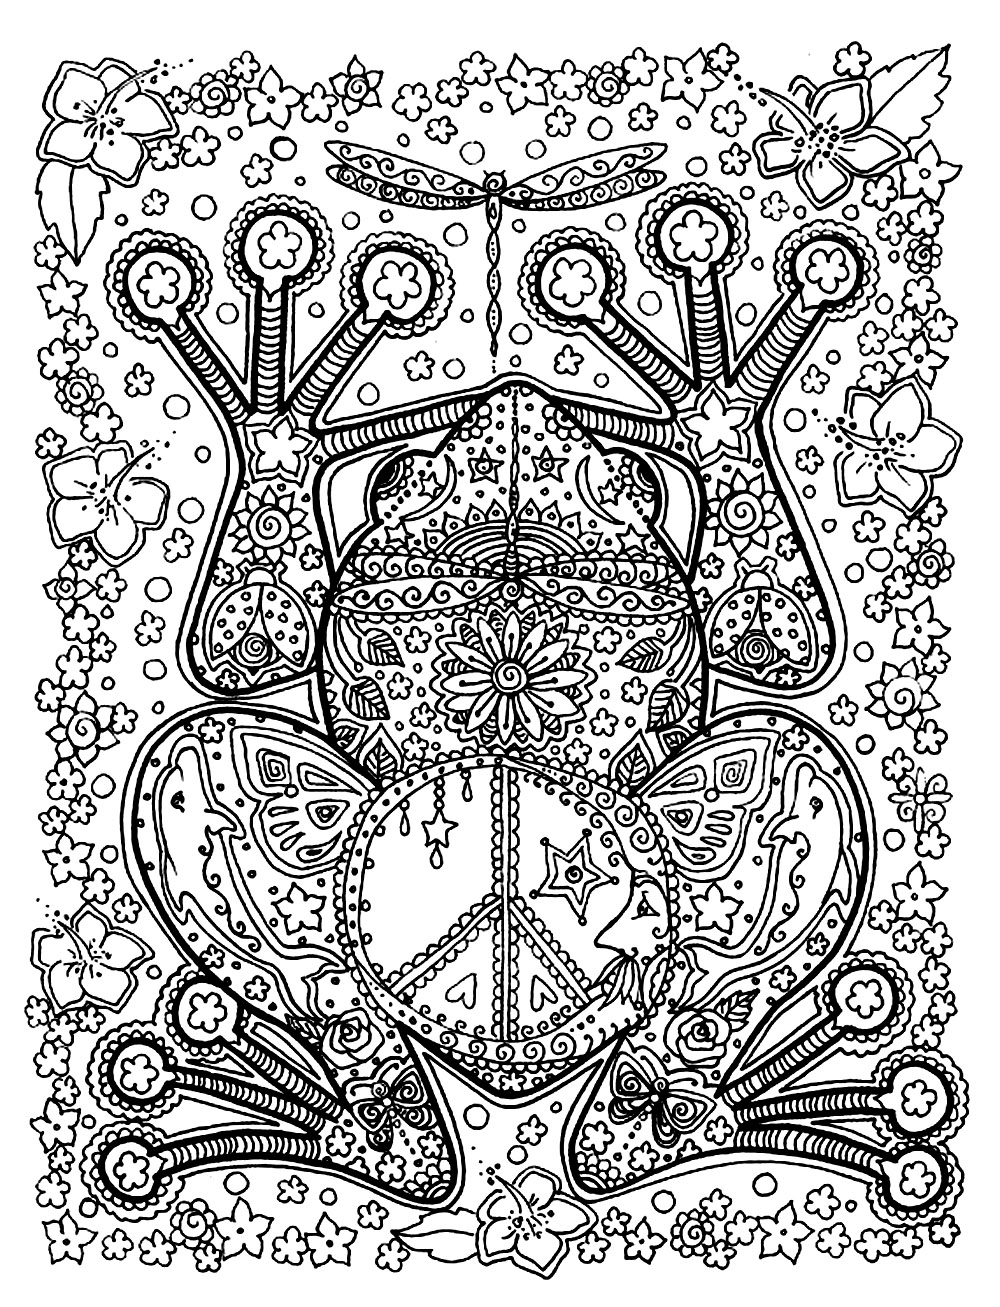 Coloring Page Animals Big Frog A With Patterns Full Of Details Inside And Outside